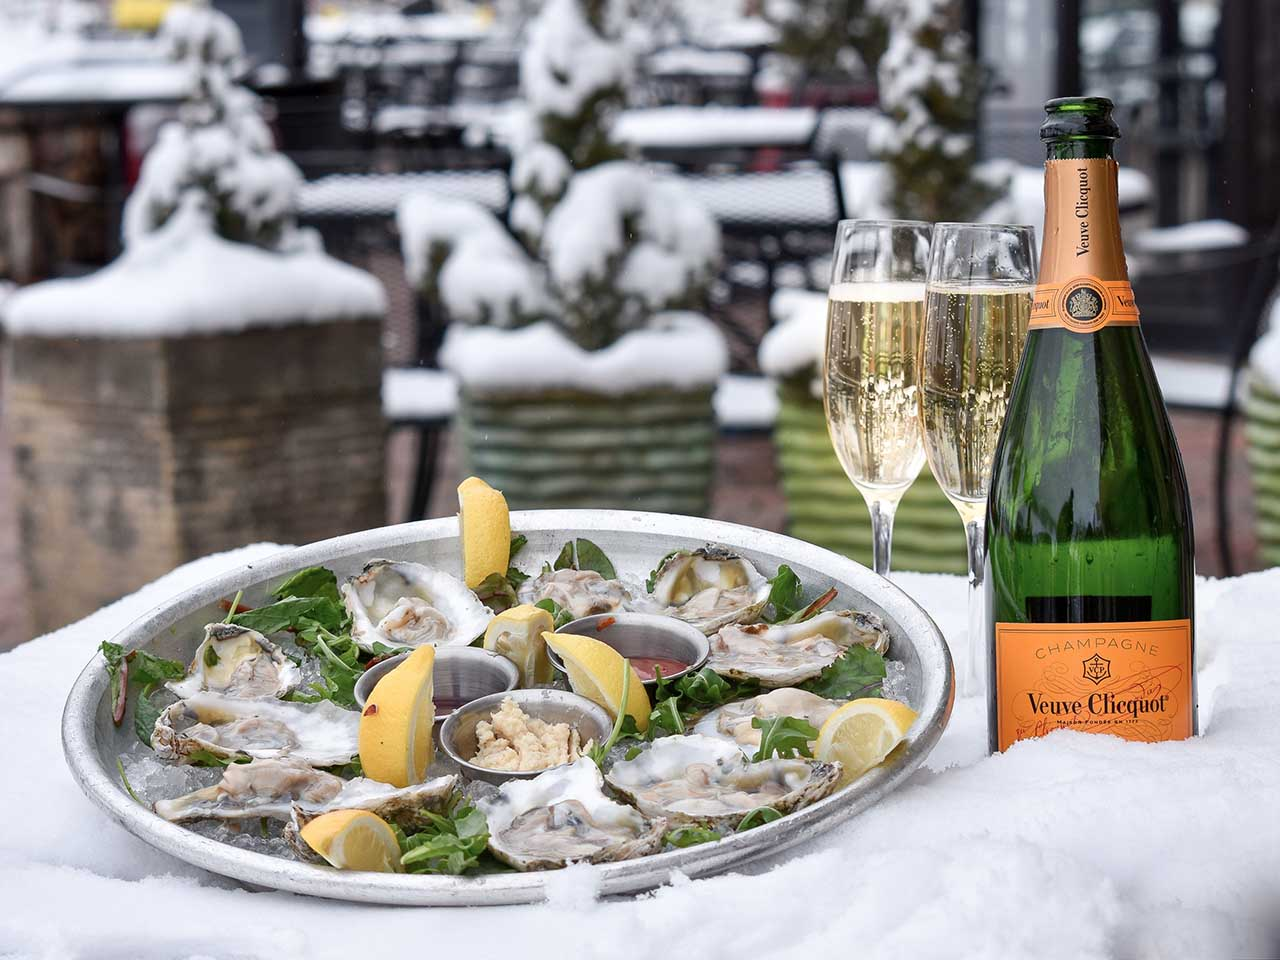 Oysters and Veuve